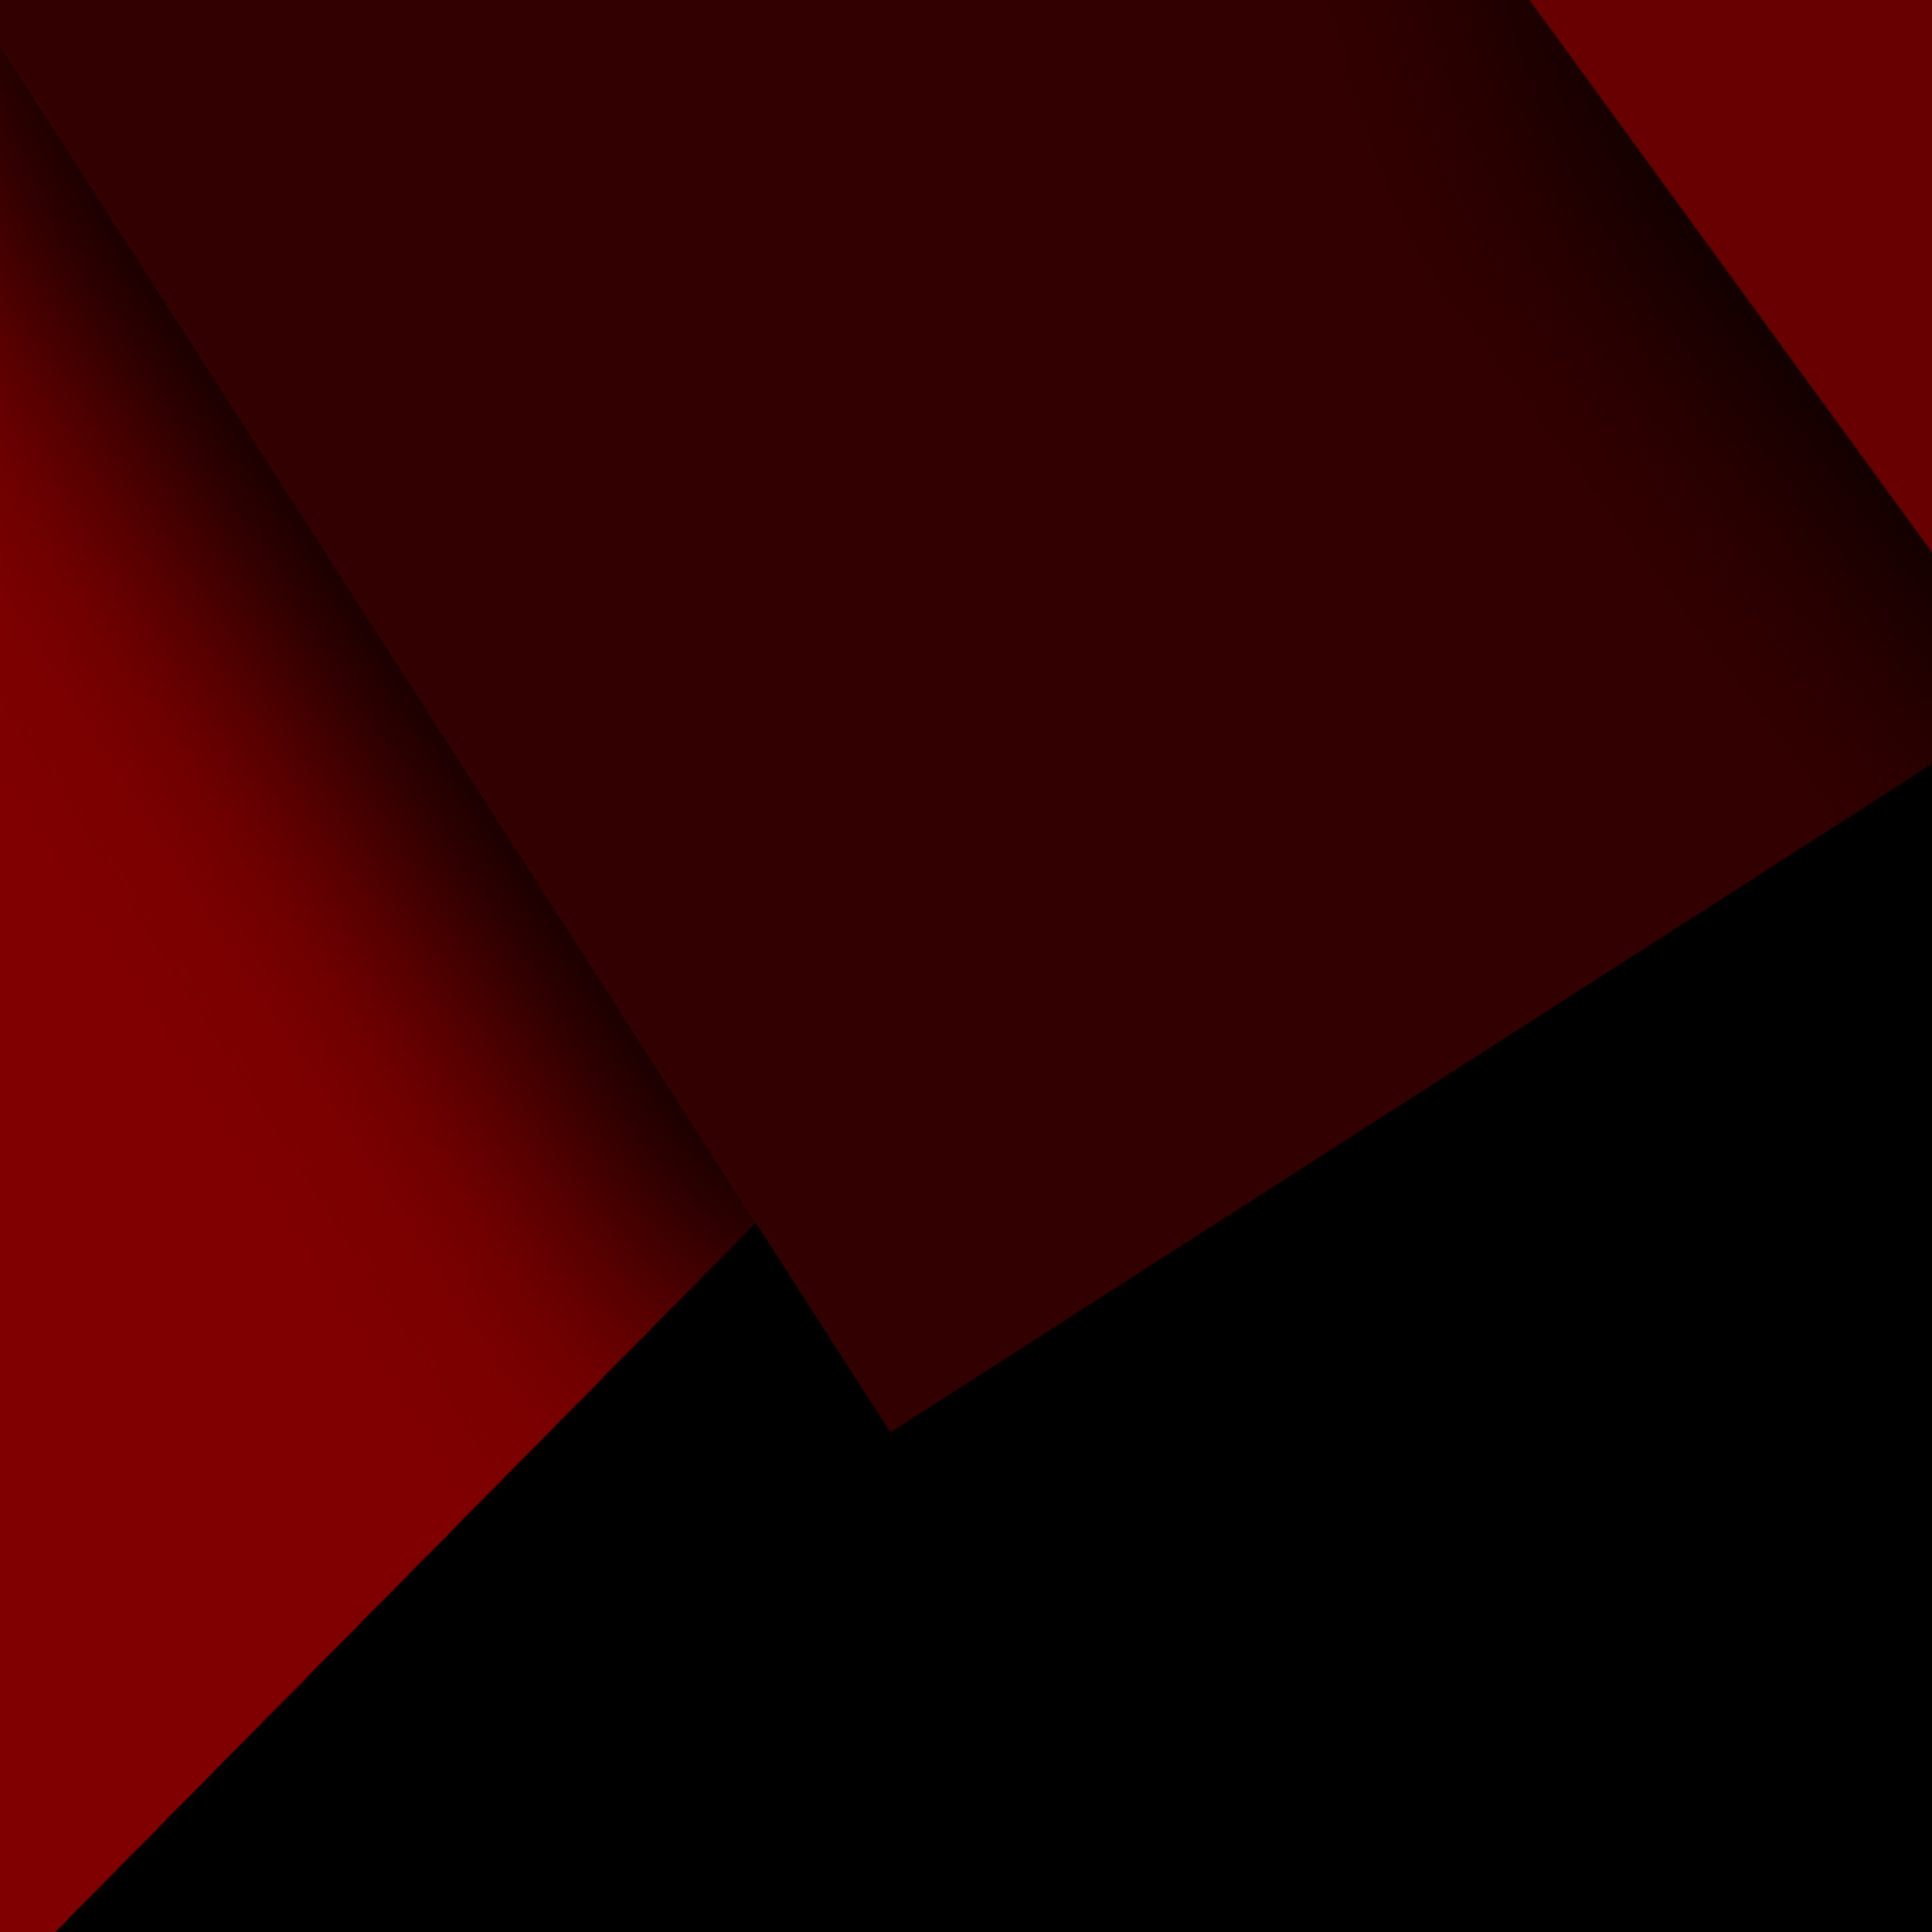 2048x2048 Dark Red Black Abstract 4k Ipad Air HD 4k